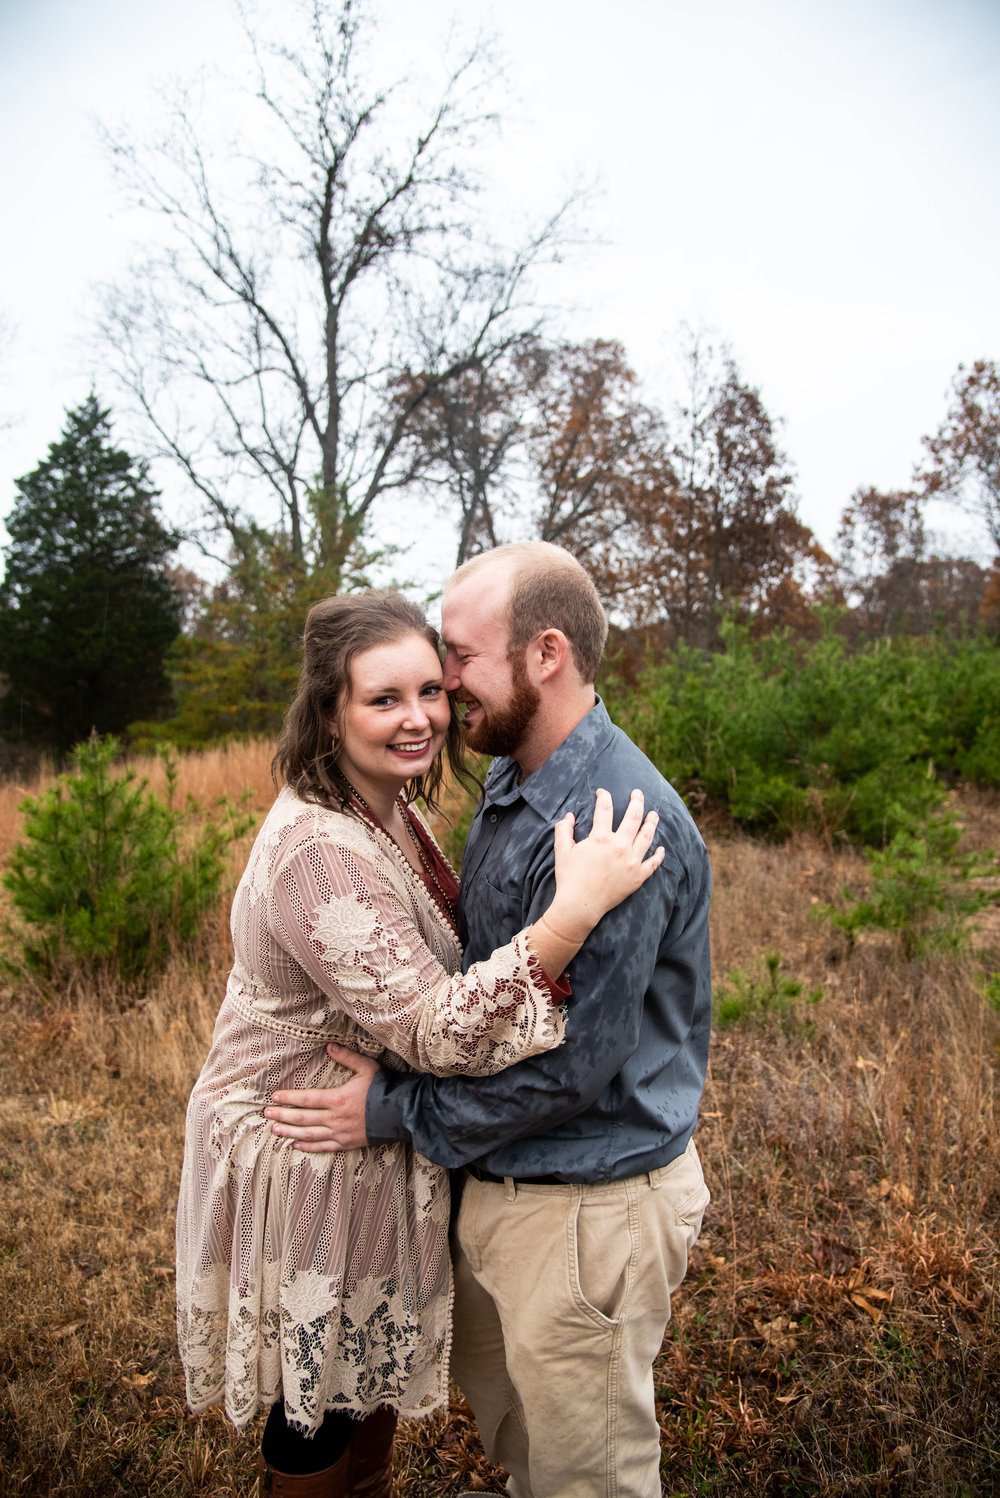 Kyla Jo Photography Engagement photographer Freetown Indiana Midwest Photographer Southern Indiana Wedding Photographer